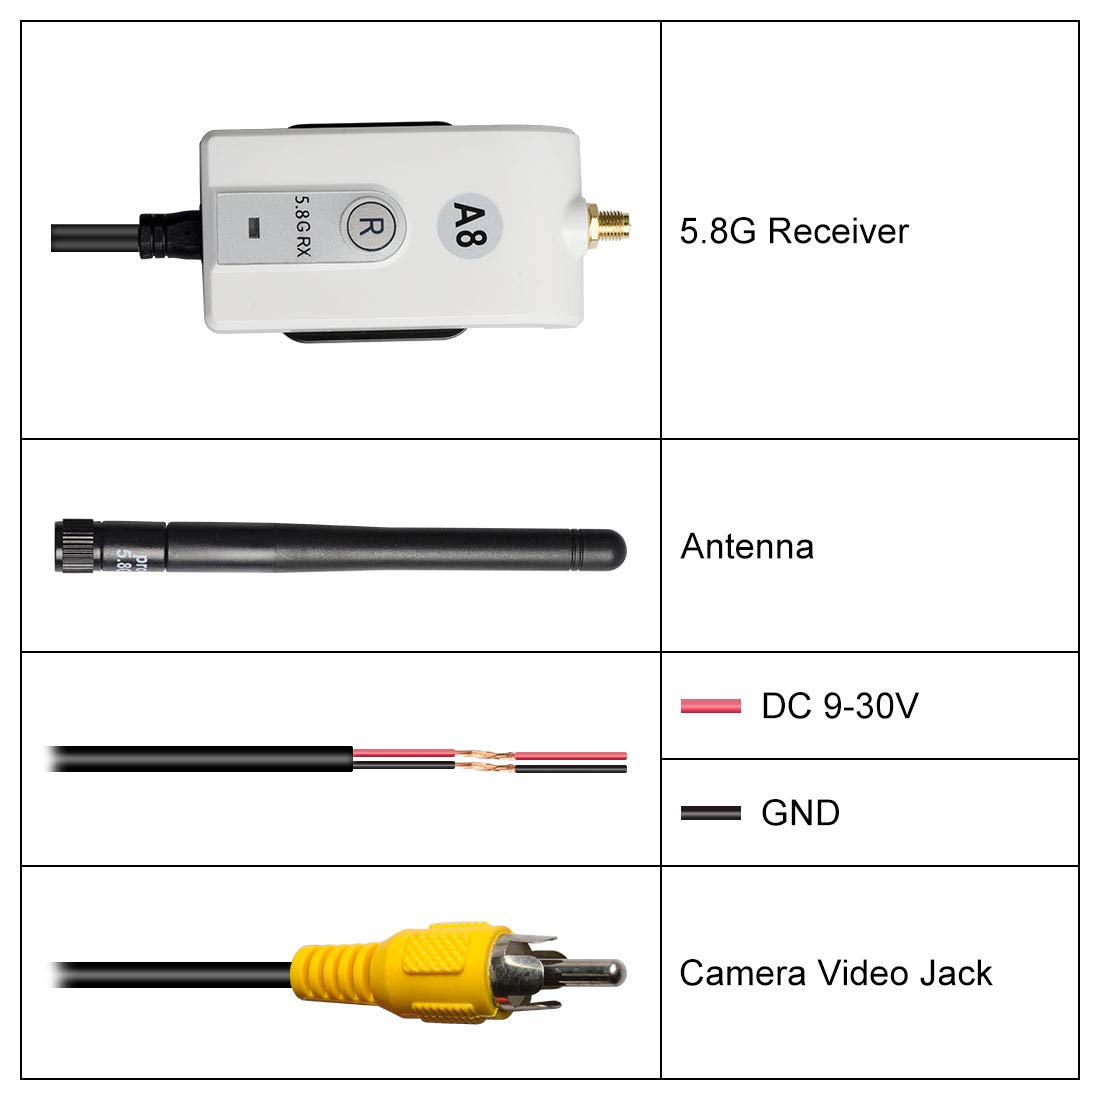 GOQOTOMO E-600 5.8G Wireless Color Video Transmitter and Receiver Long Range Kit for The Vehicle Backup Camera and Car Rear View Parking Monitor